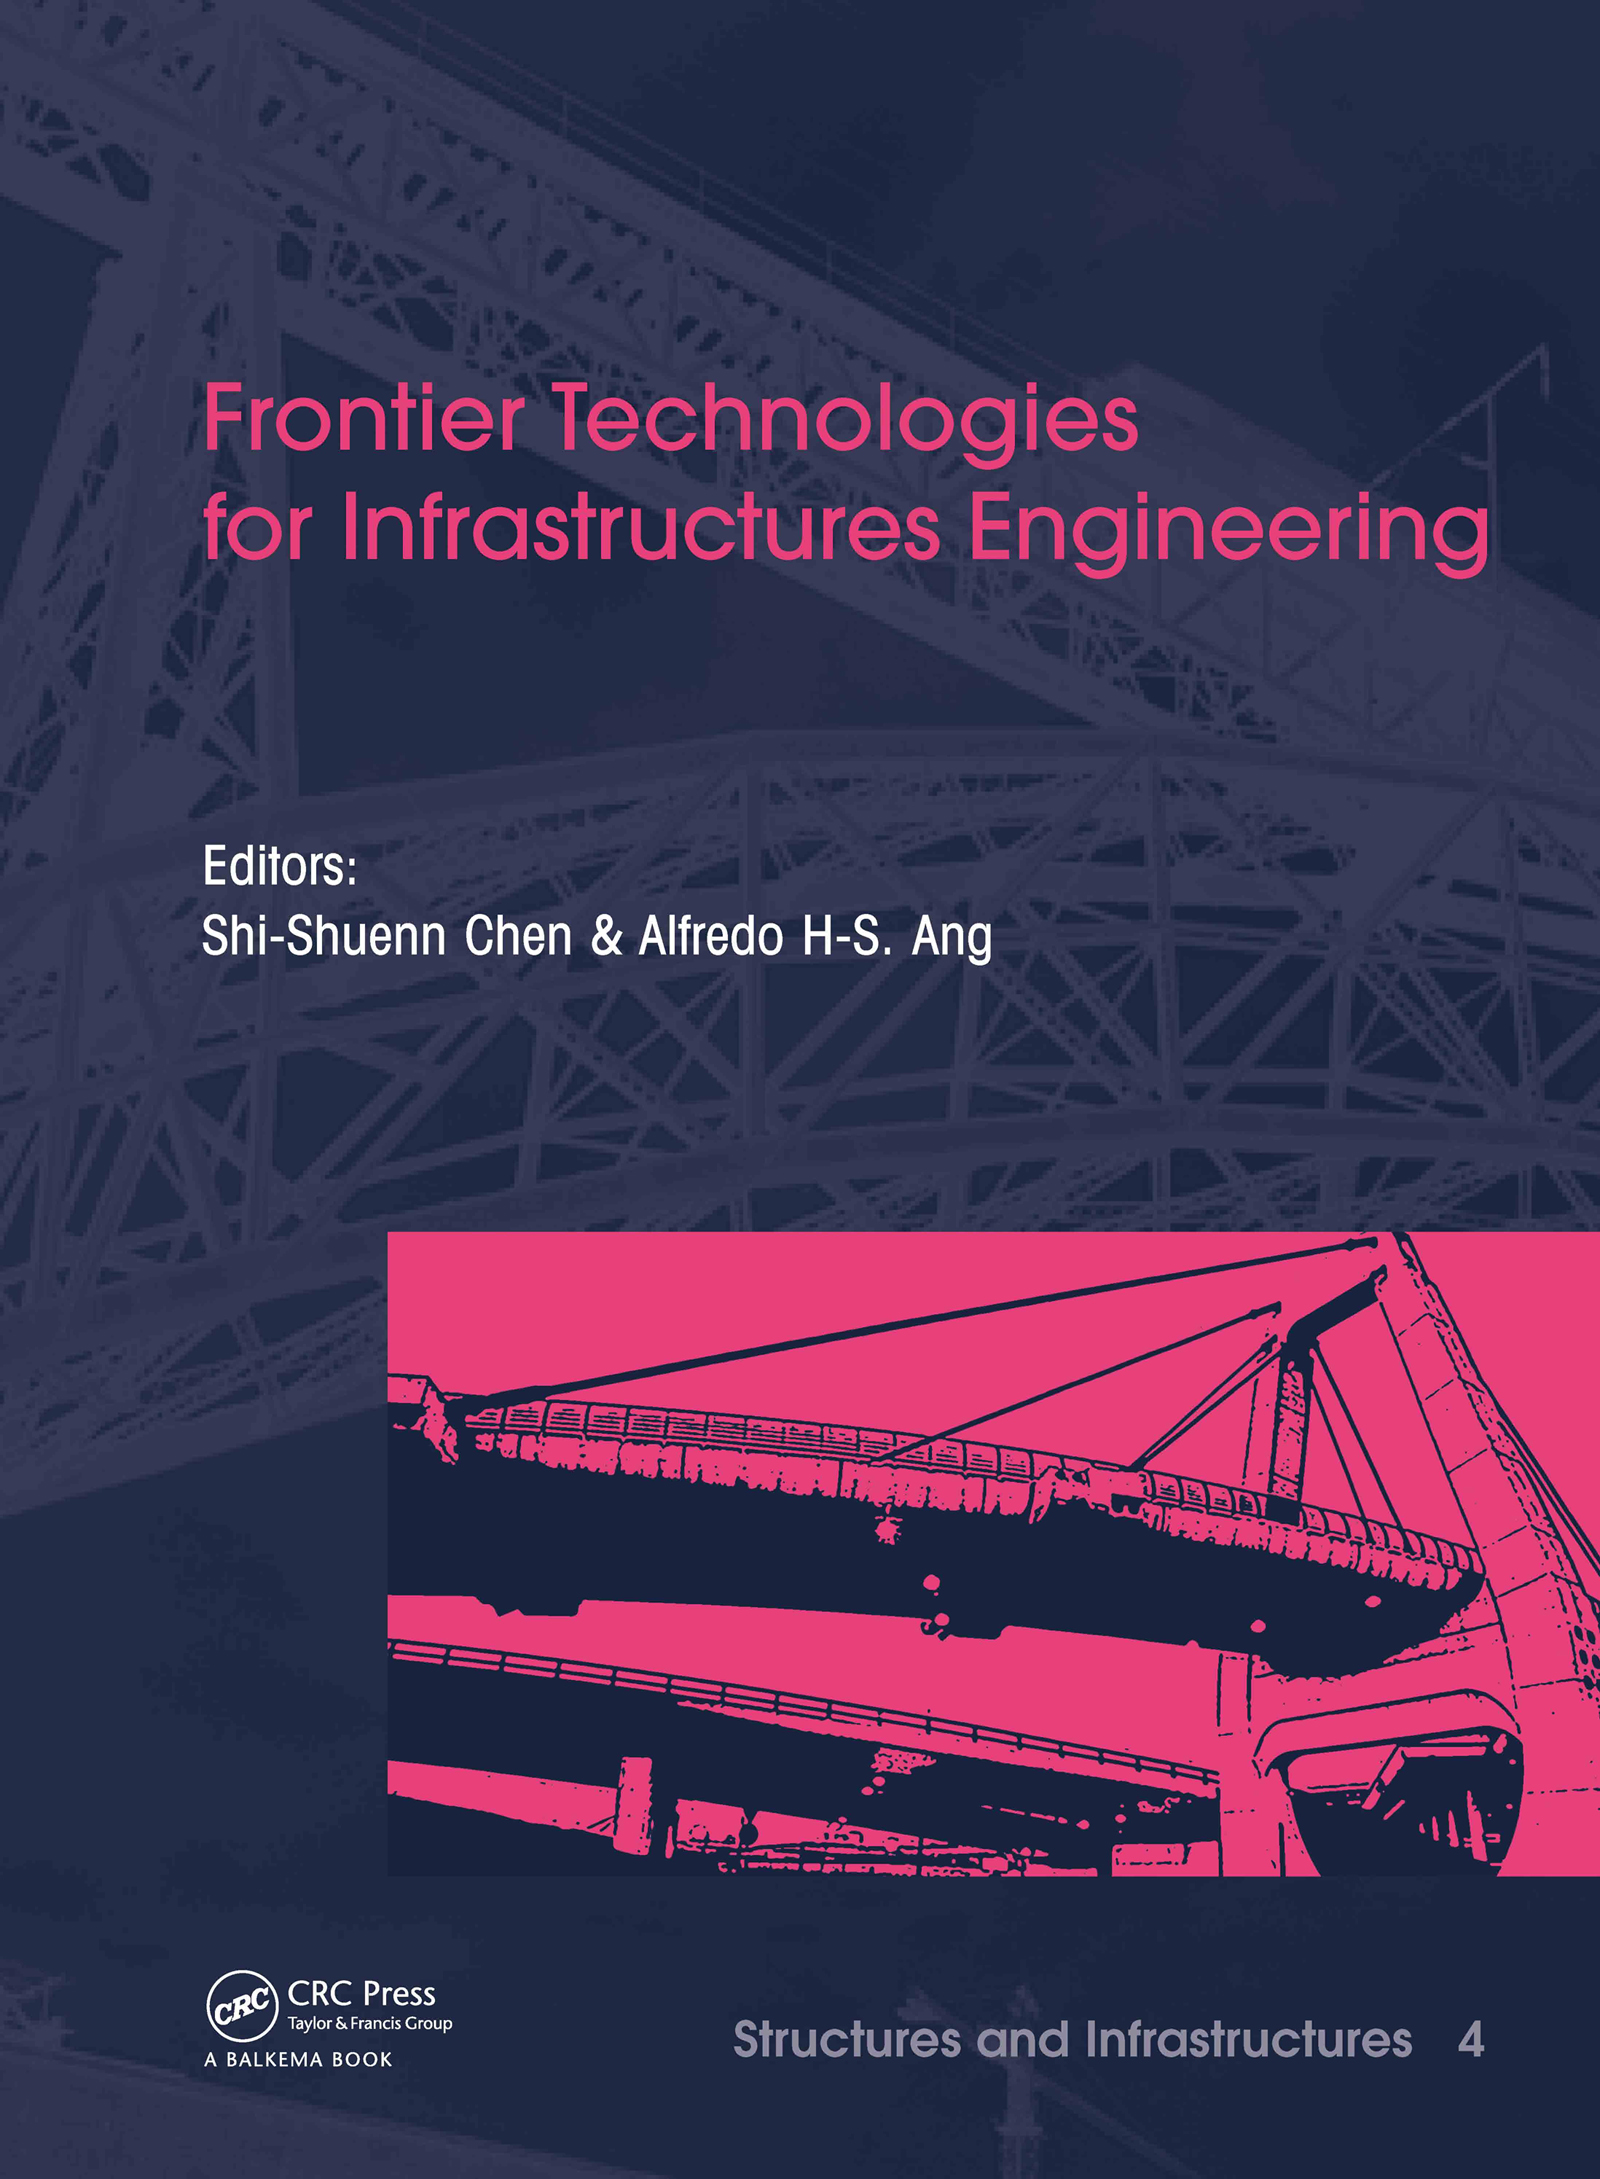 Frontier Technologies for Infrastructures Engineering: Structures and Infrastructures Book Series, Vol. 4 book cover